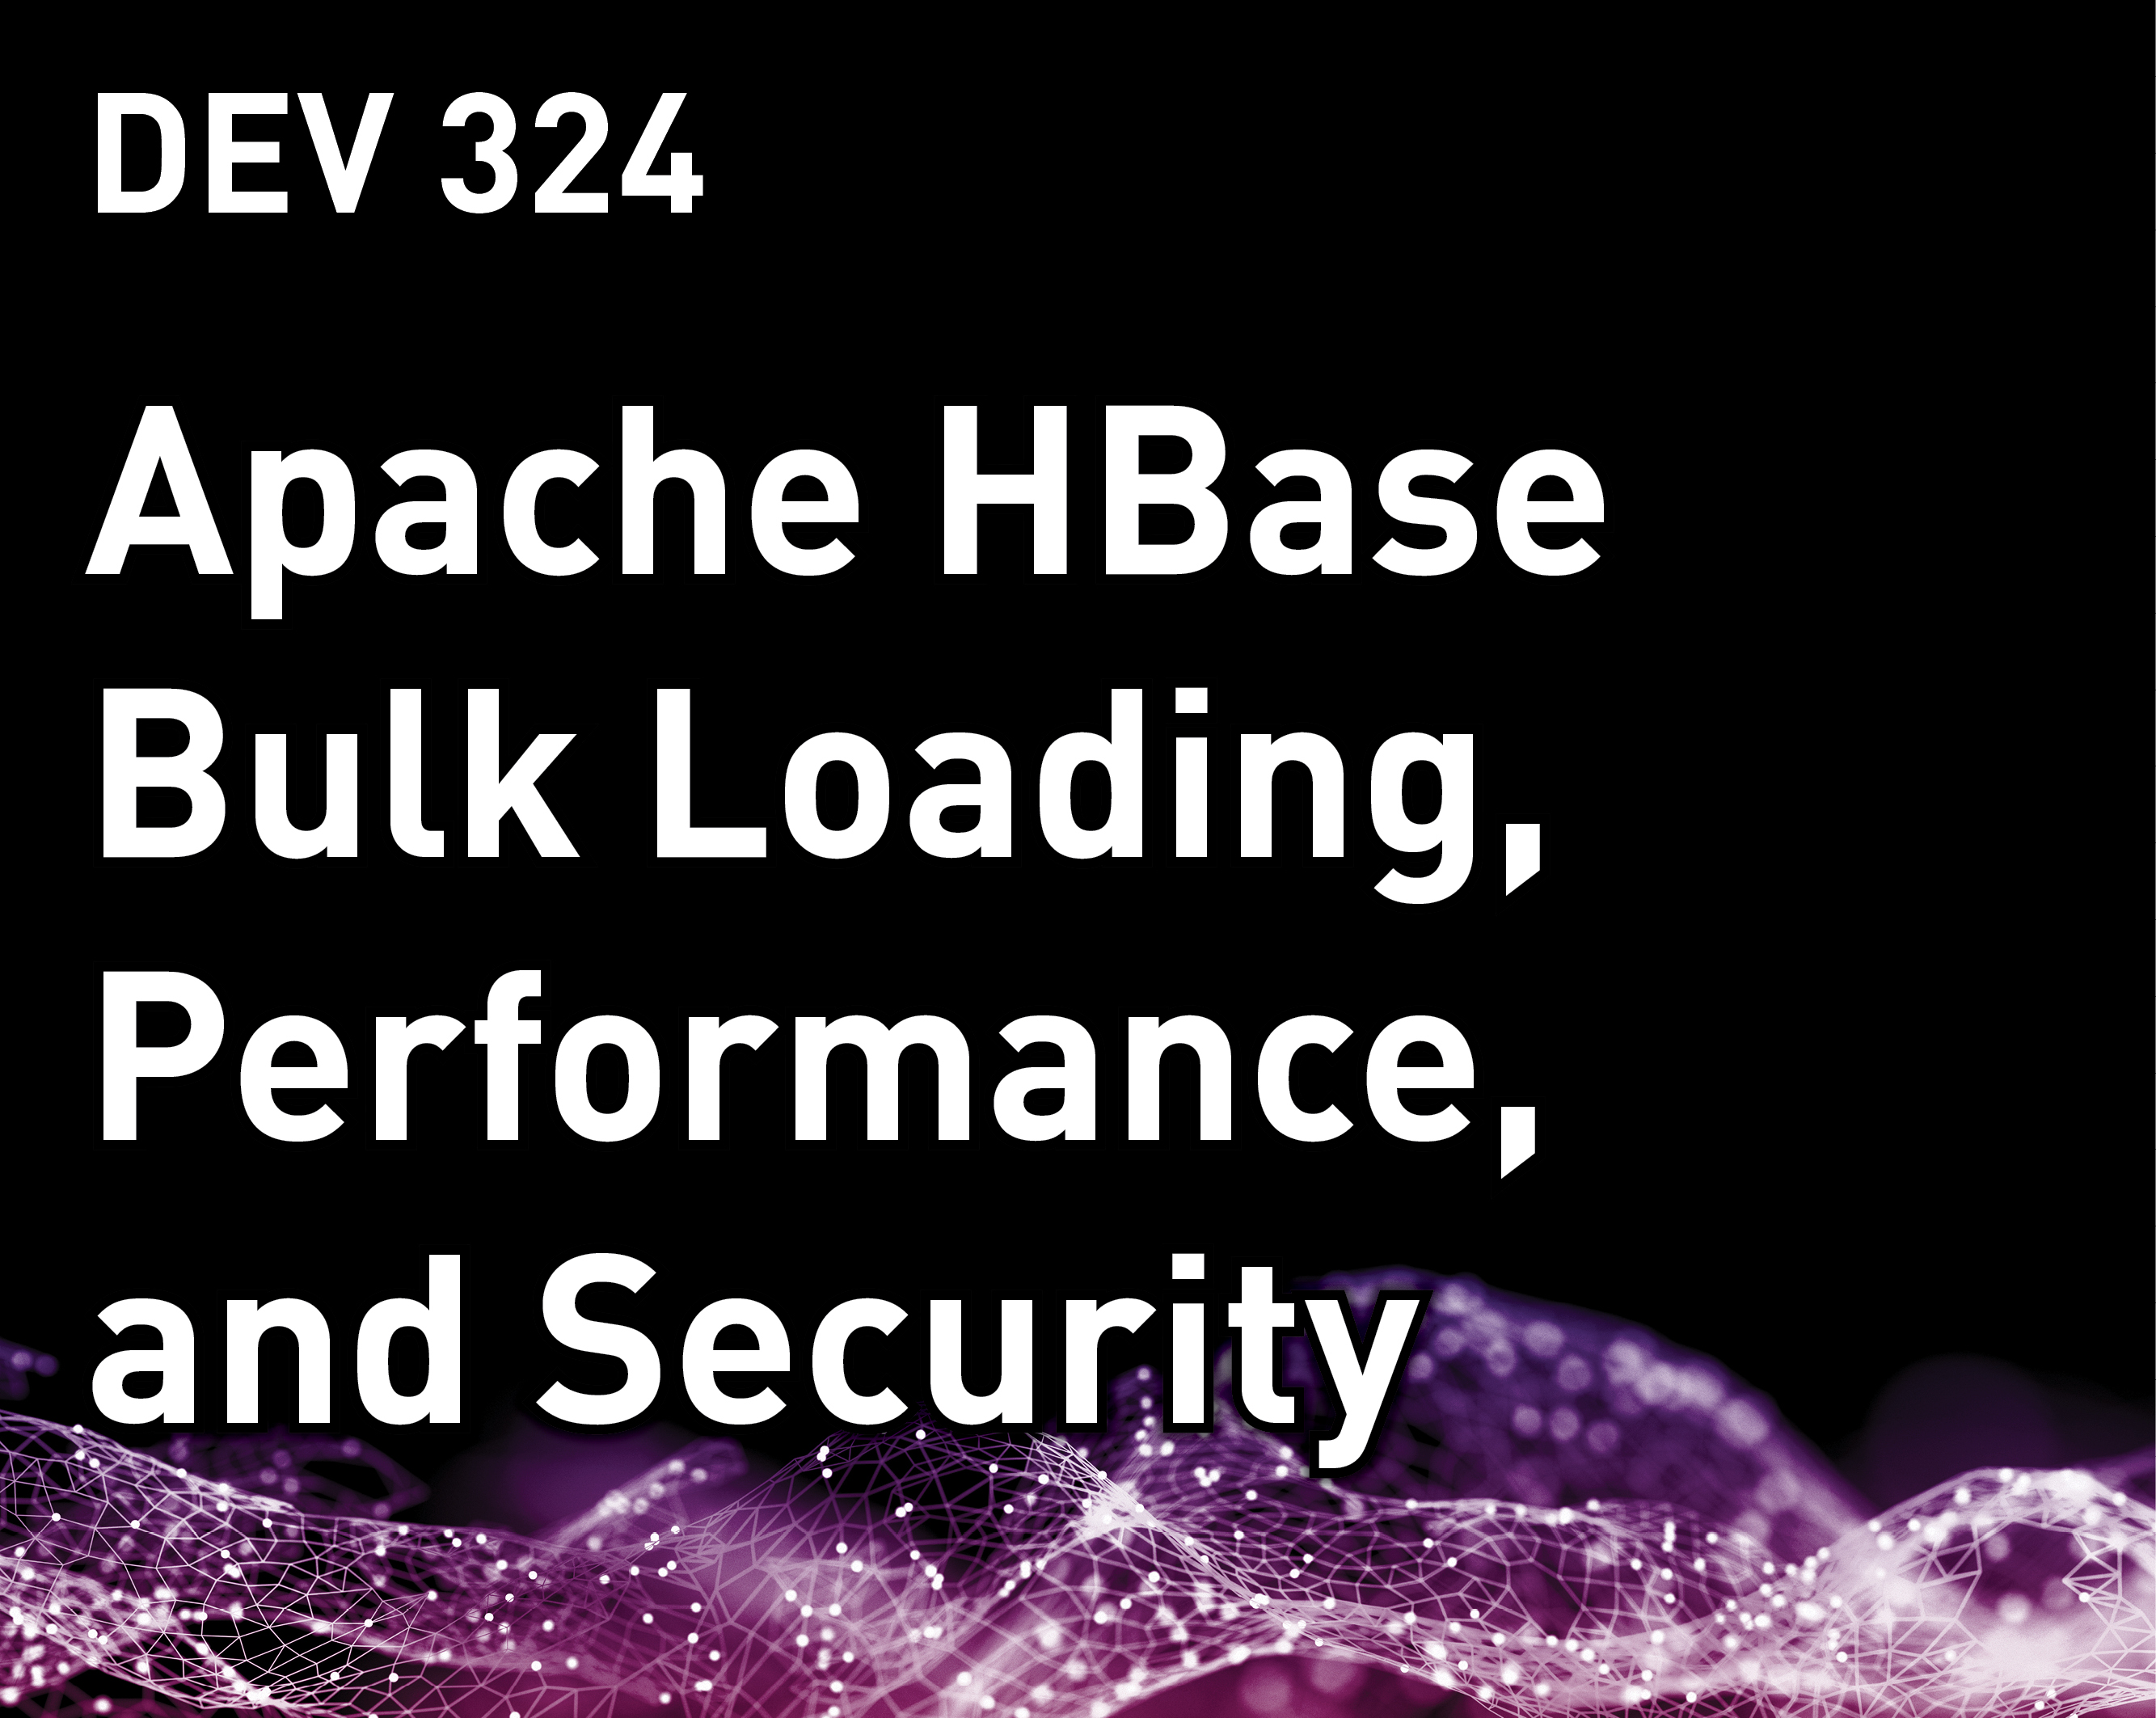 Apache HBase Bulk Loading, Performance, and Security